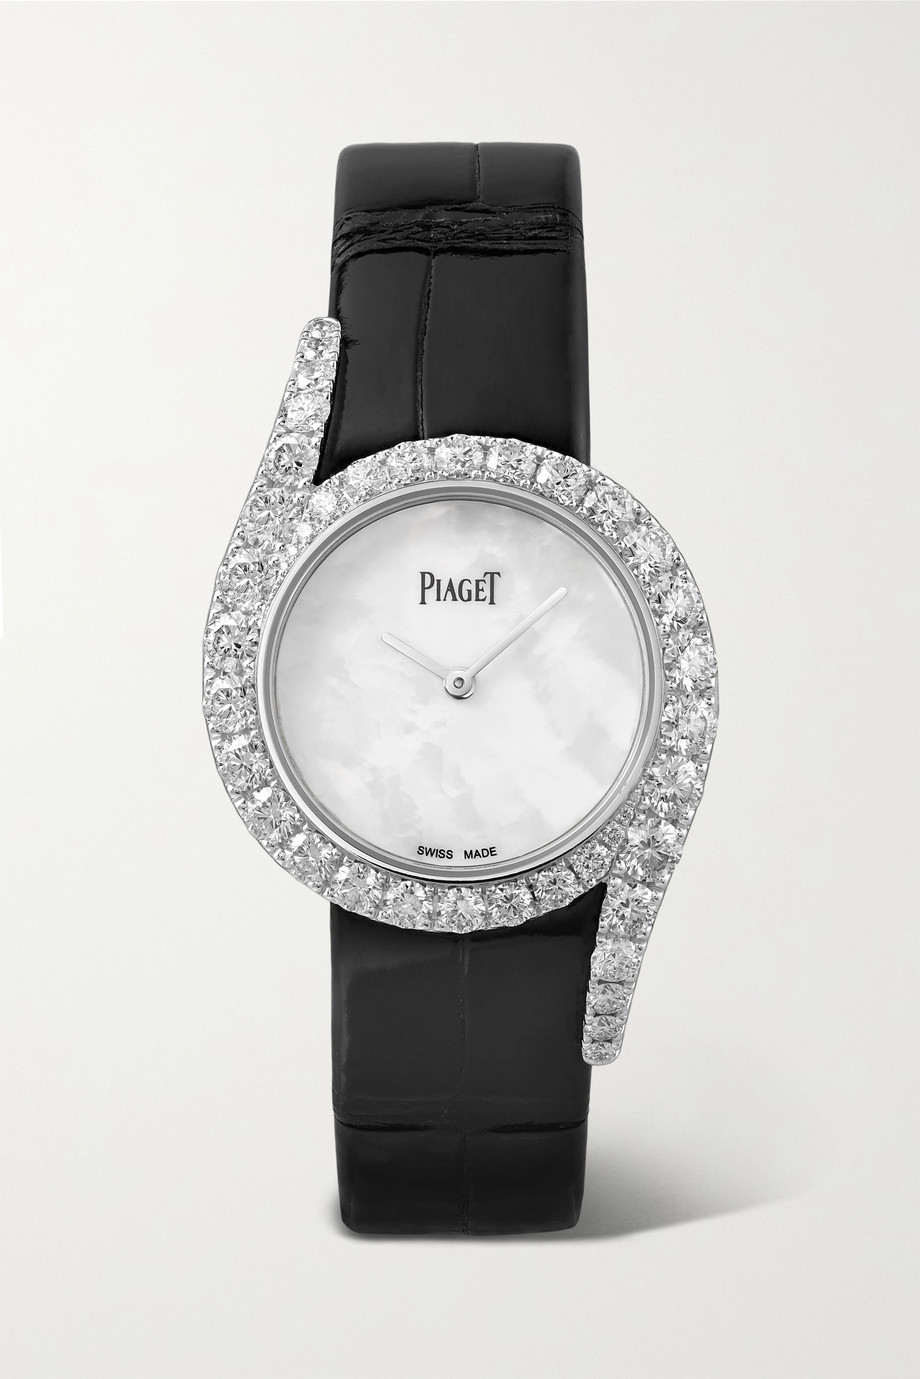 PIAGET Limelight Gala 32mm 18-karat white gold, alligator, mother-of-pearl and diamond watch